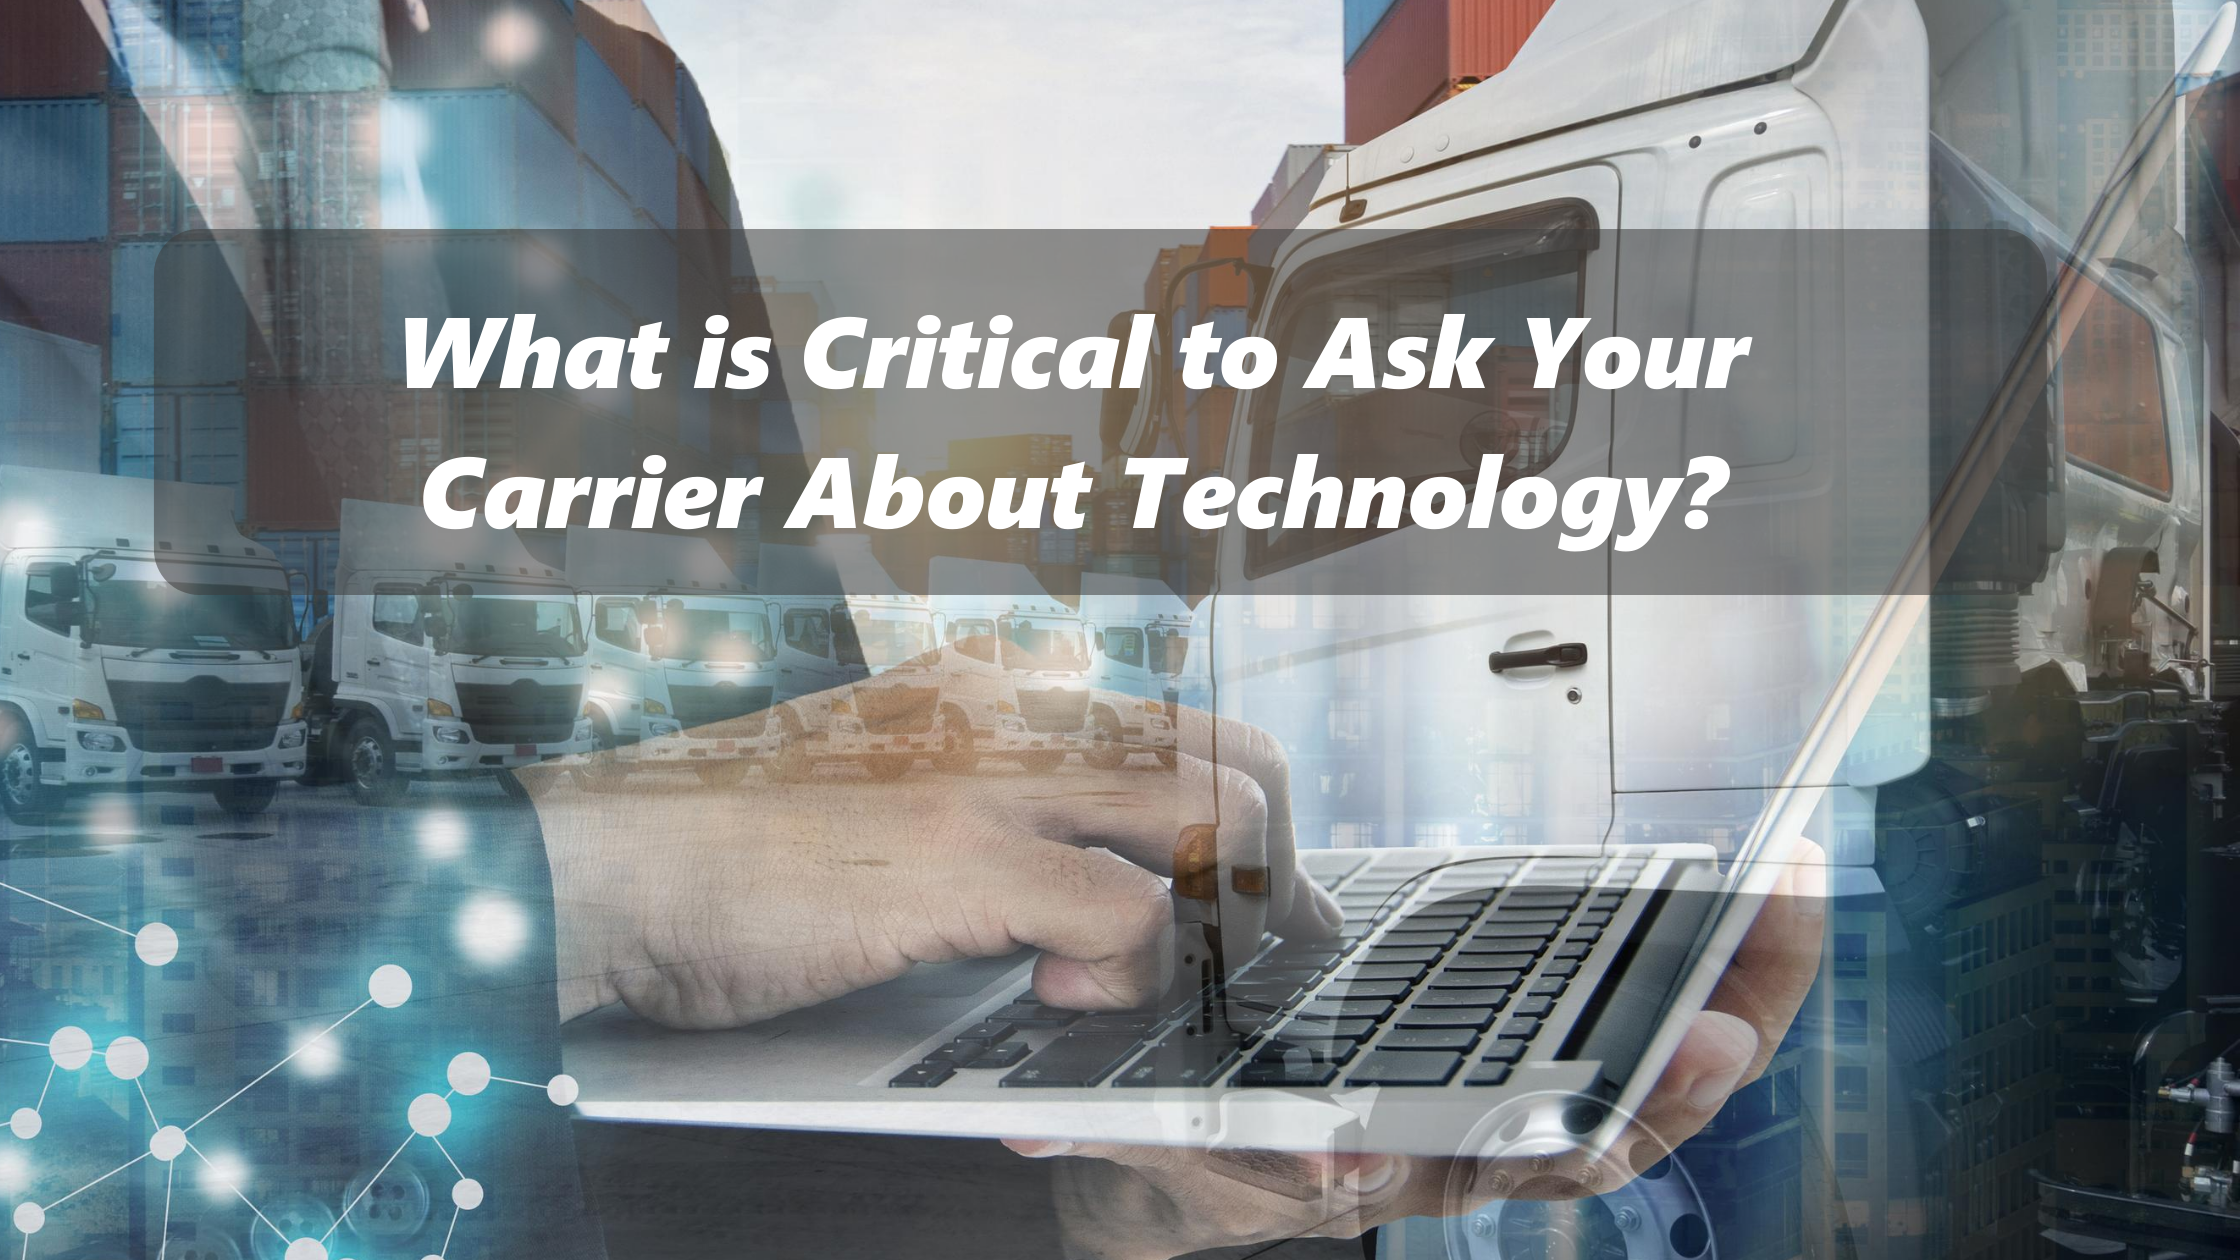 What is Critical to Ask About Your Carriers Technology?